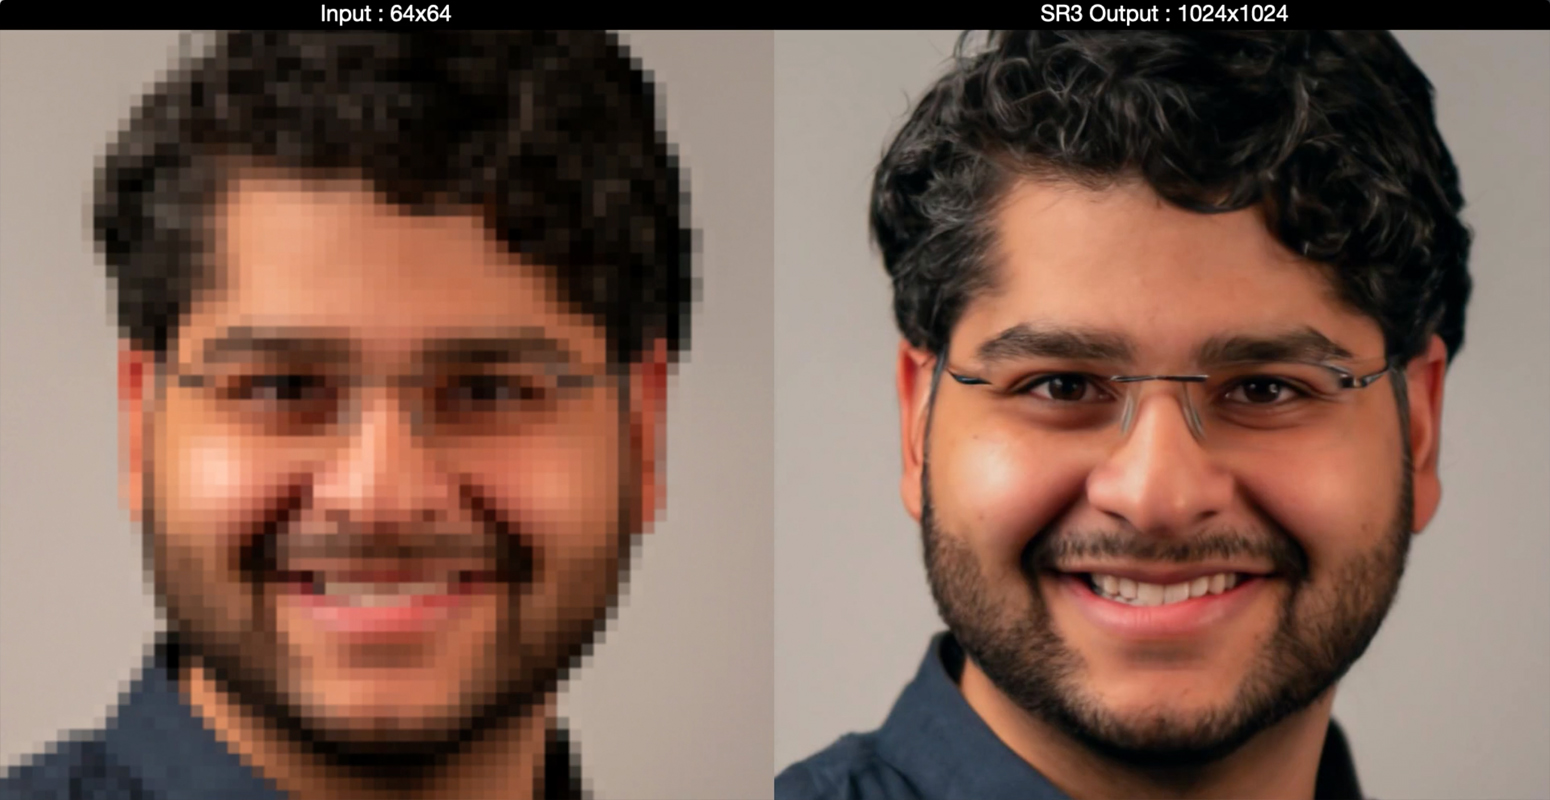 Google AI Turns Low-Res Images To High-Res - Super Resolution SR3 Model (2)